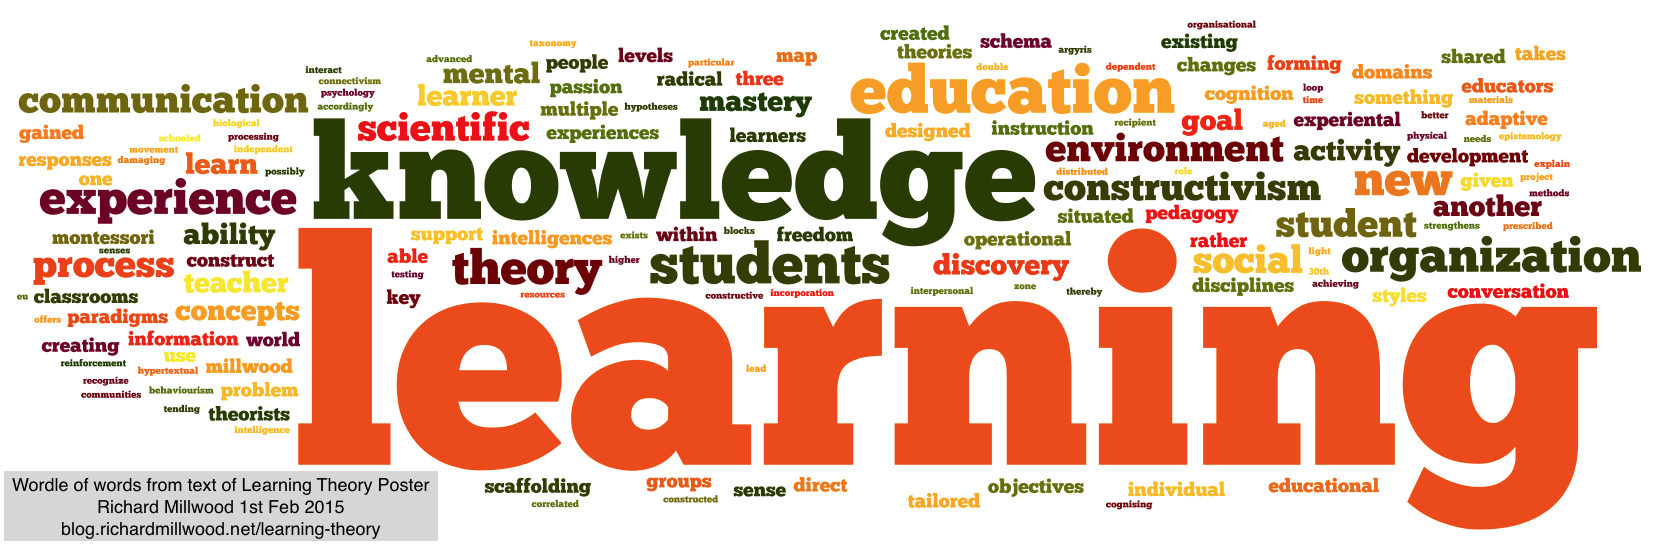 Worldle tag cloud of words in learning theory poster